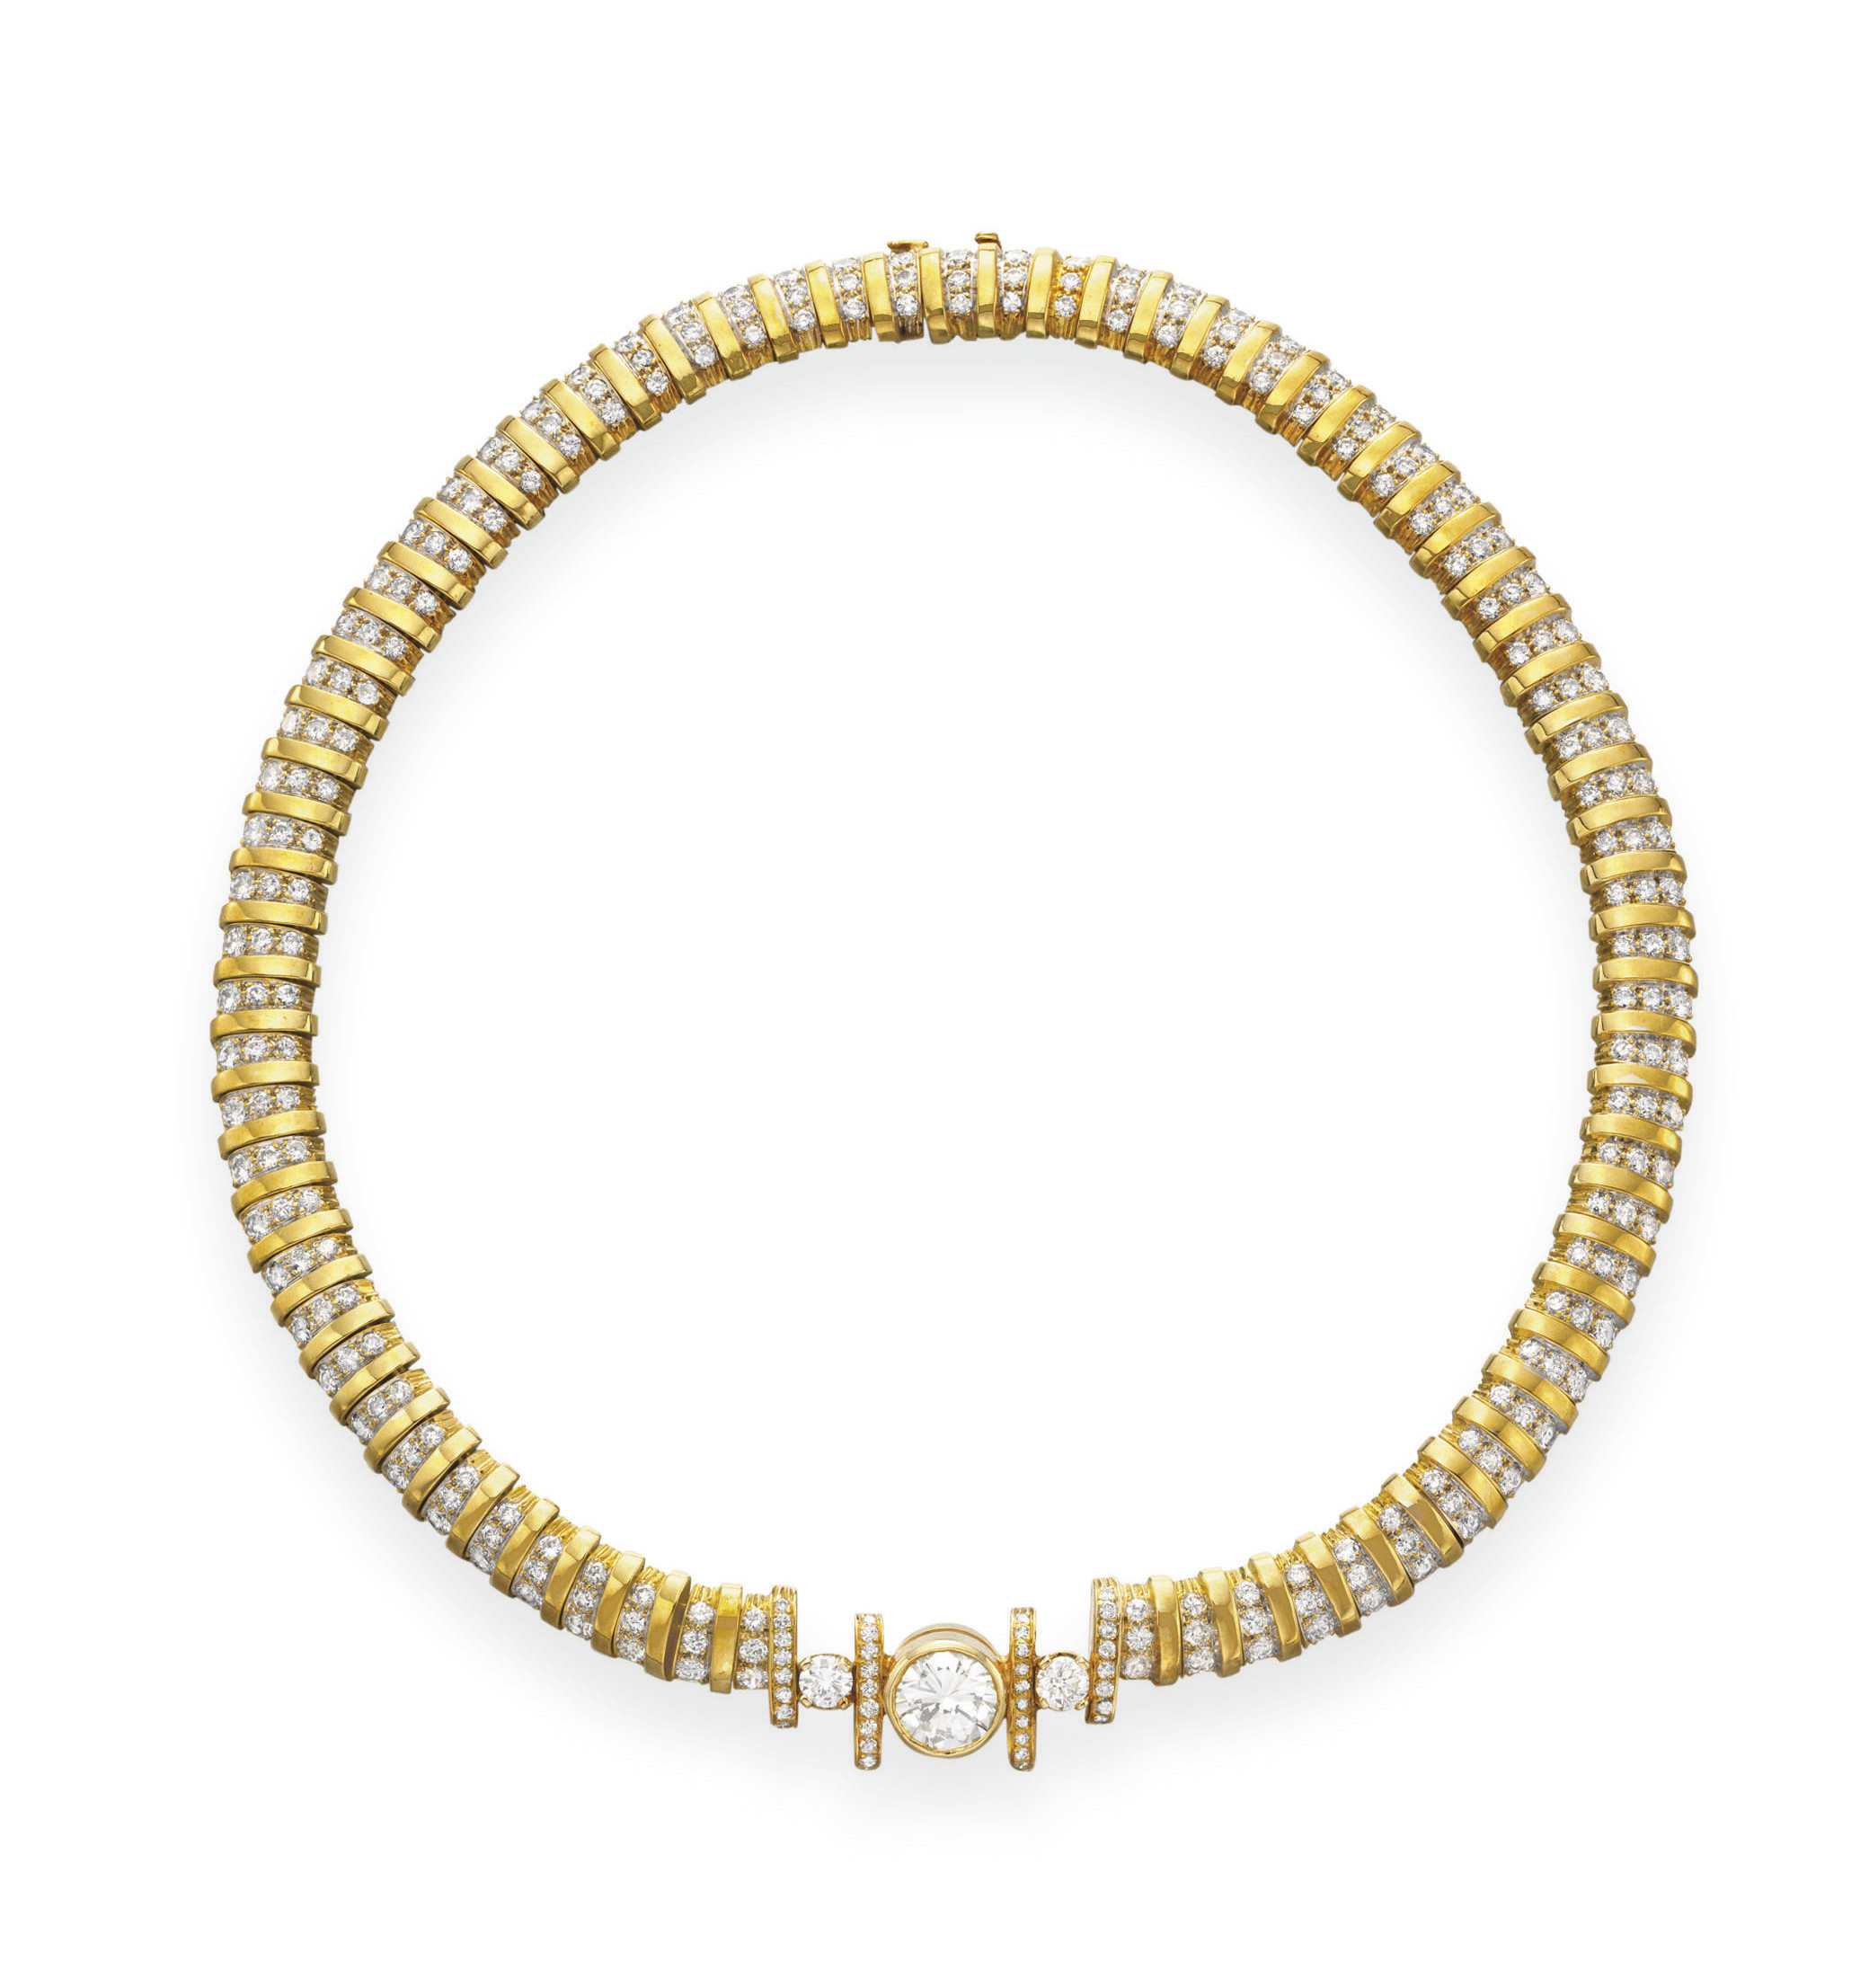 A DIAMOND AND GOLD NECKLACE